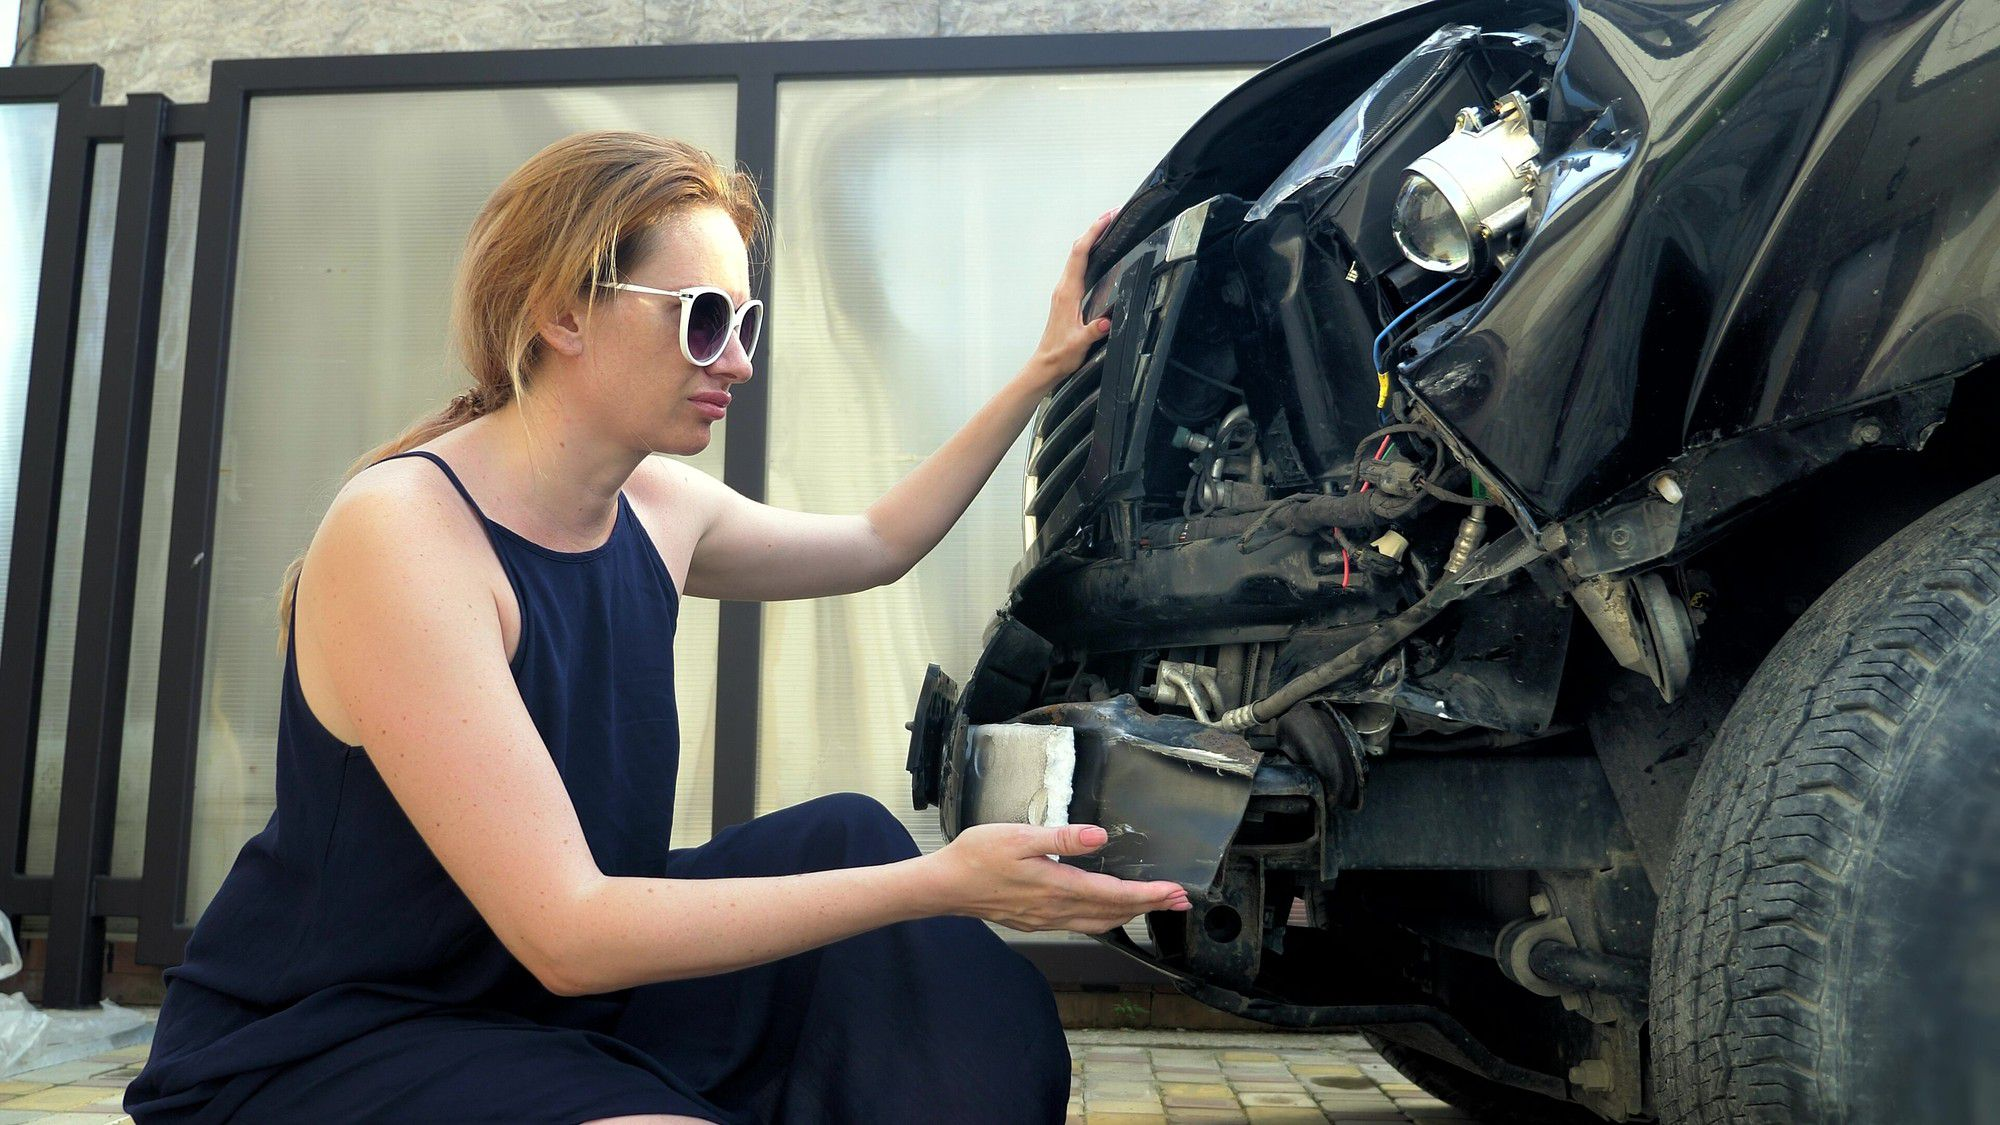 Claiming On Car Insurance For Scratches – Here's What To Do Next